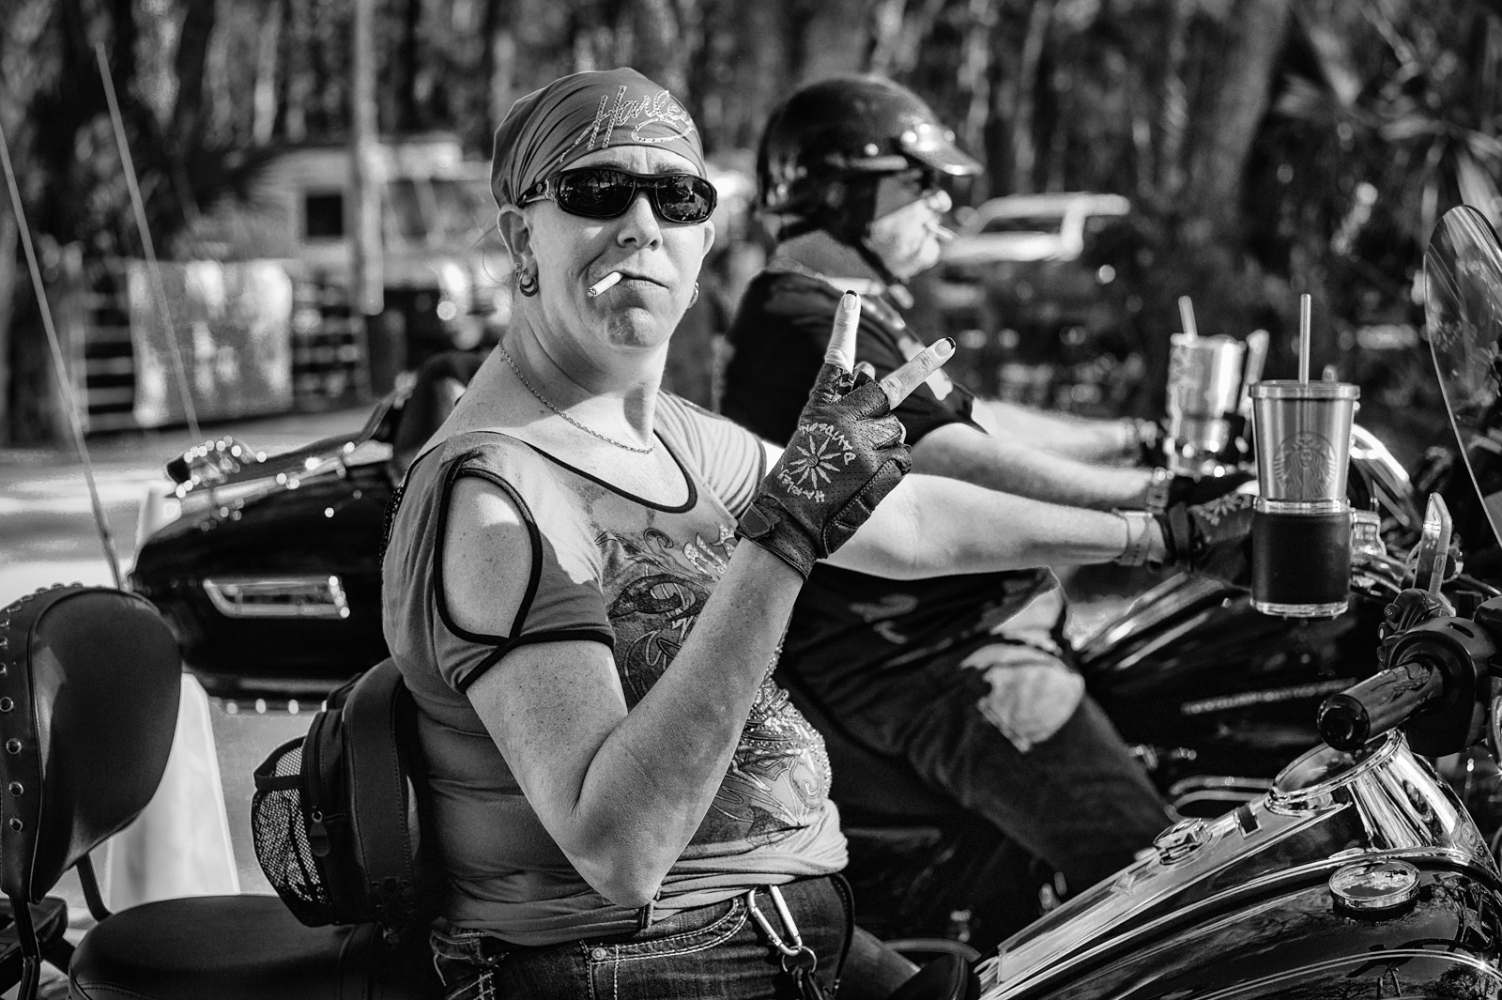 Biker Chick Bikers at the Cabbage Patch Bar